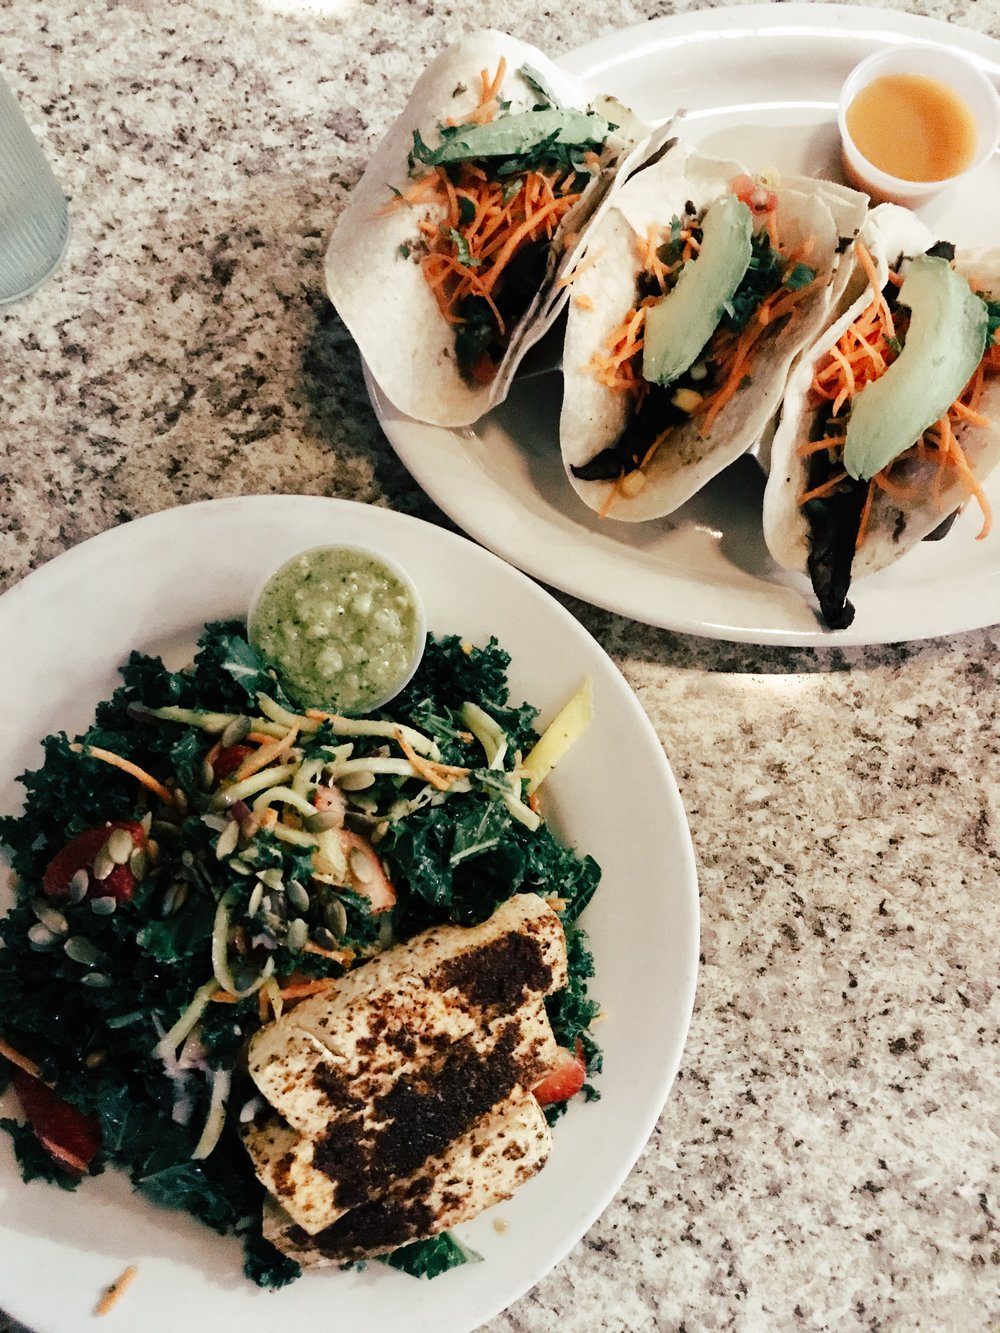 Oh Kale Yeah! salad with blackened tofu and portabella mushroom tacos